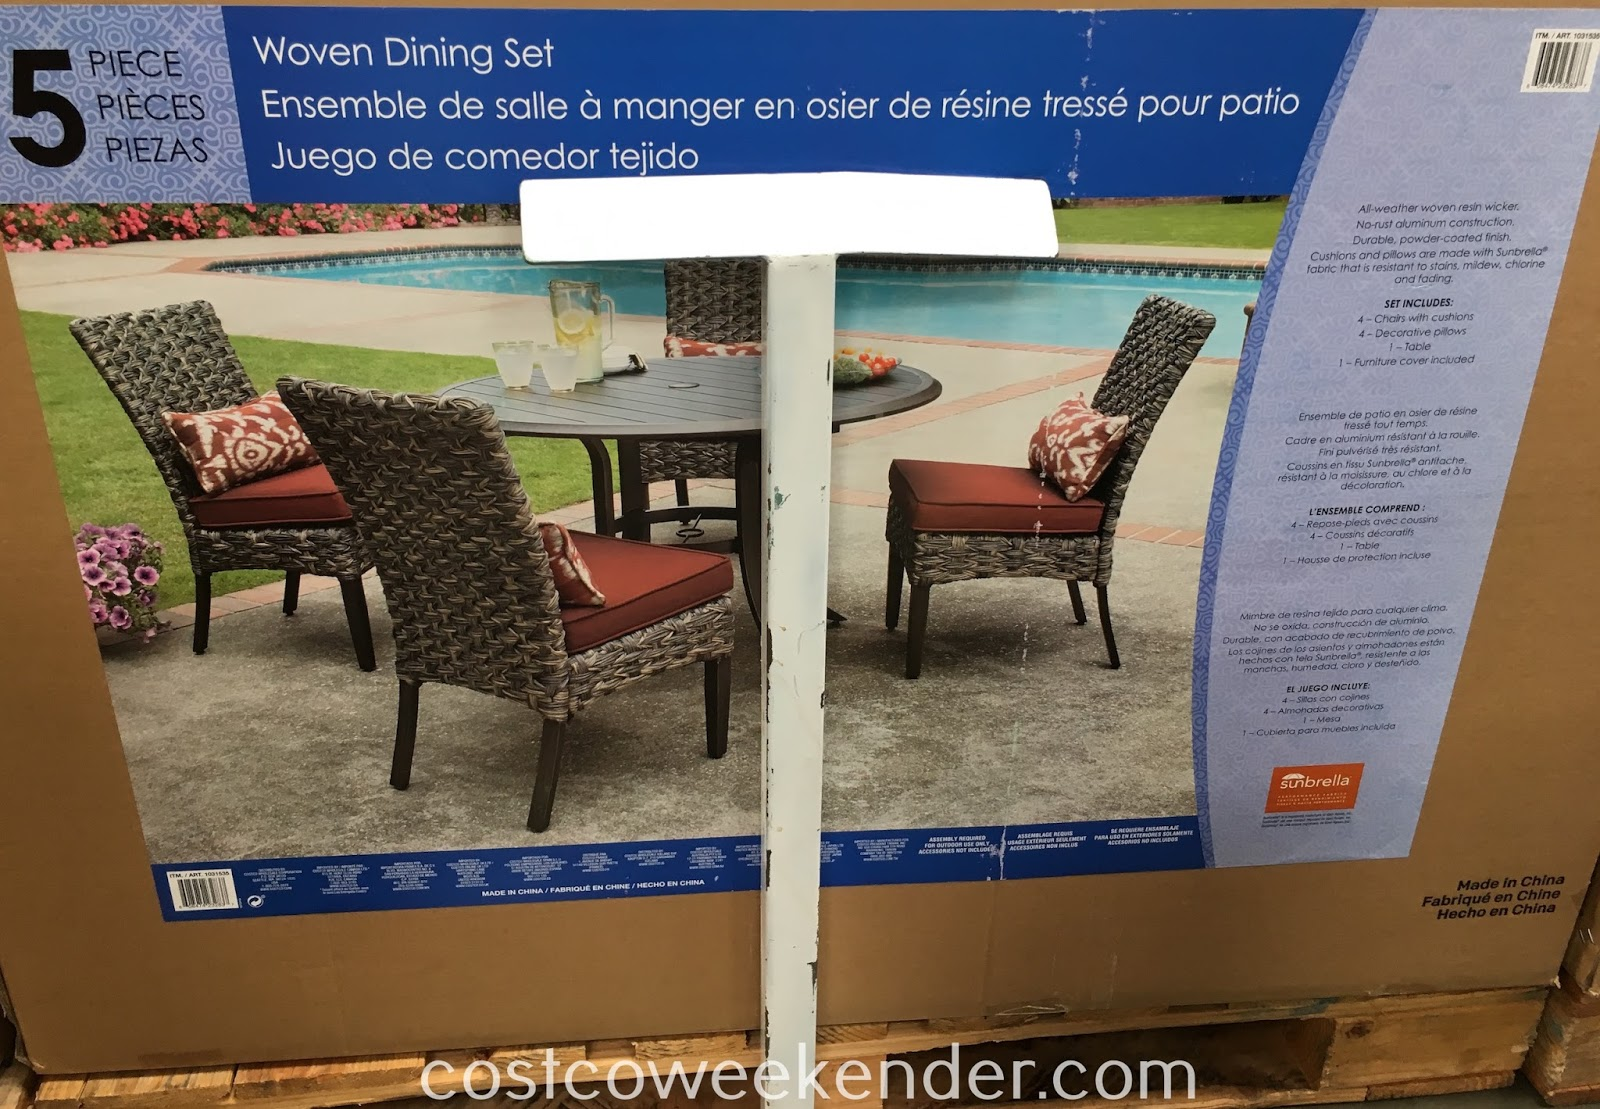 Costco 1031535 - Woodard 5-piece Woven Dining Set: great for any backyard or patio